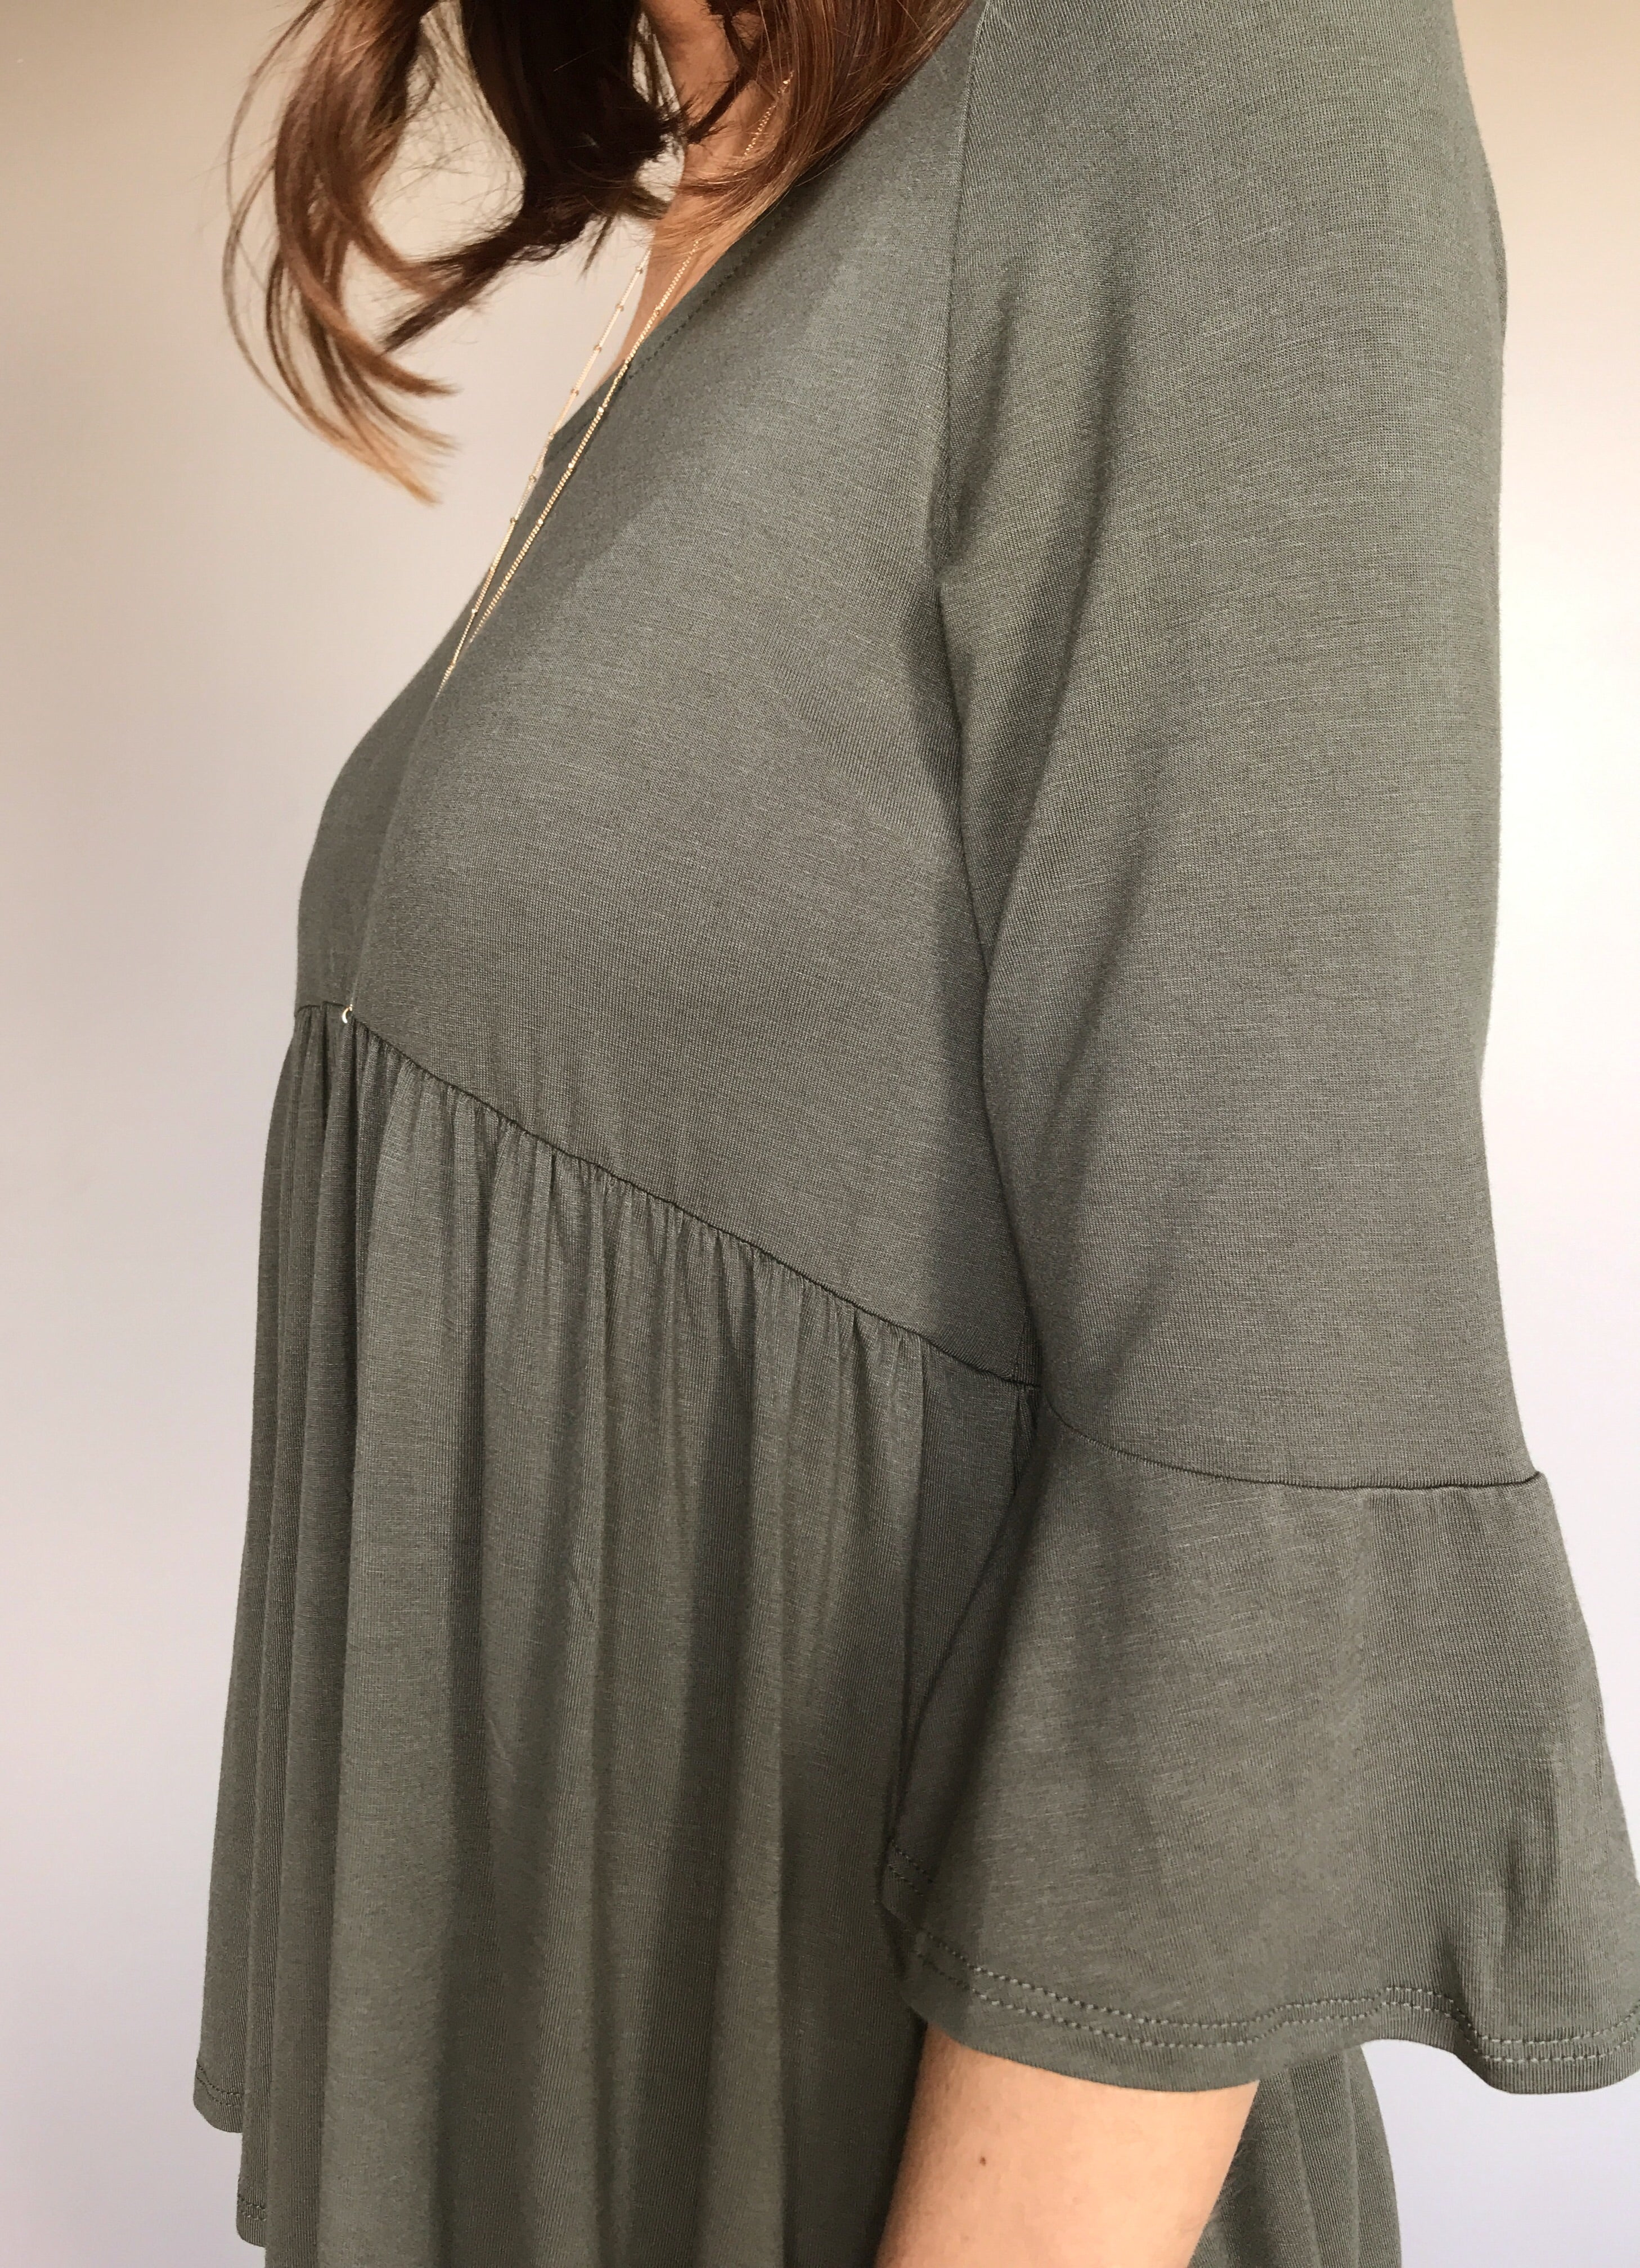 The Olive Babydoll Top (S-3XL)